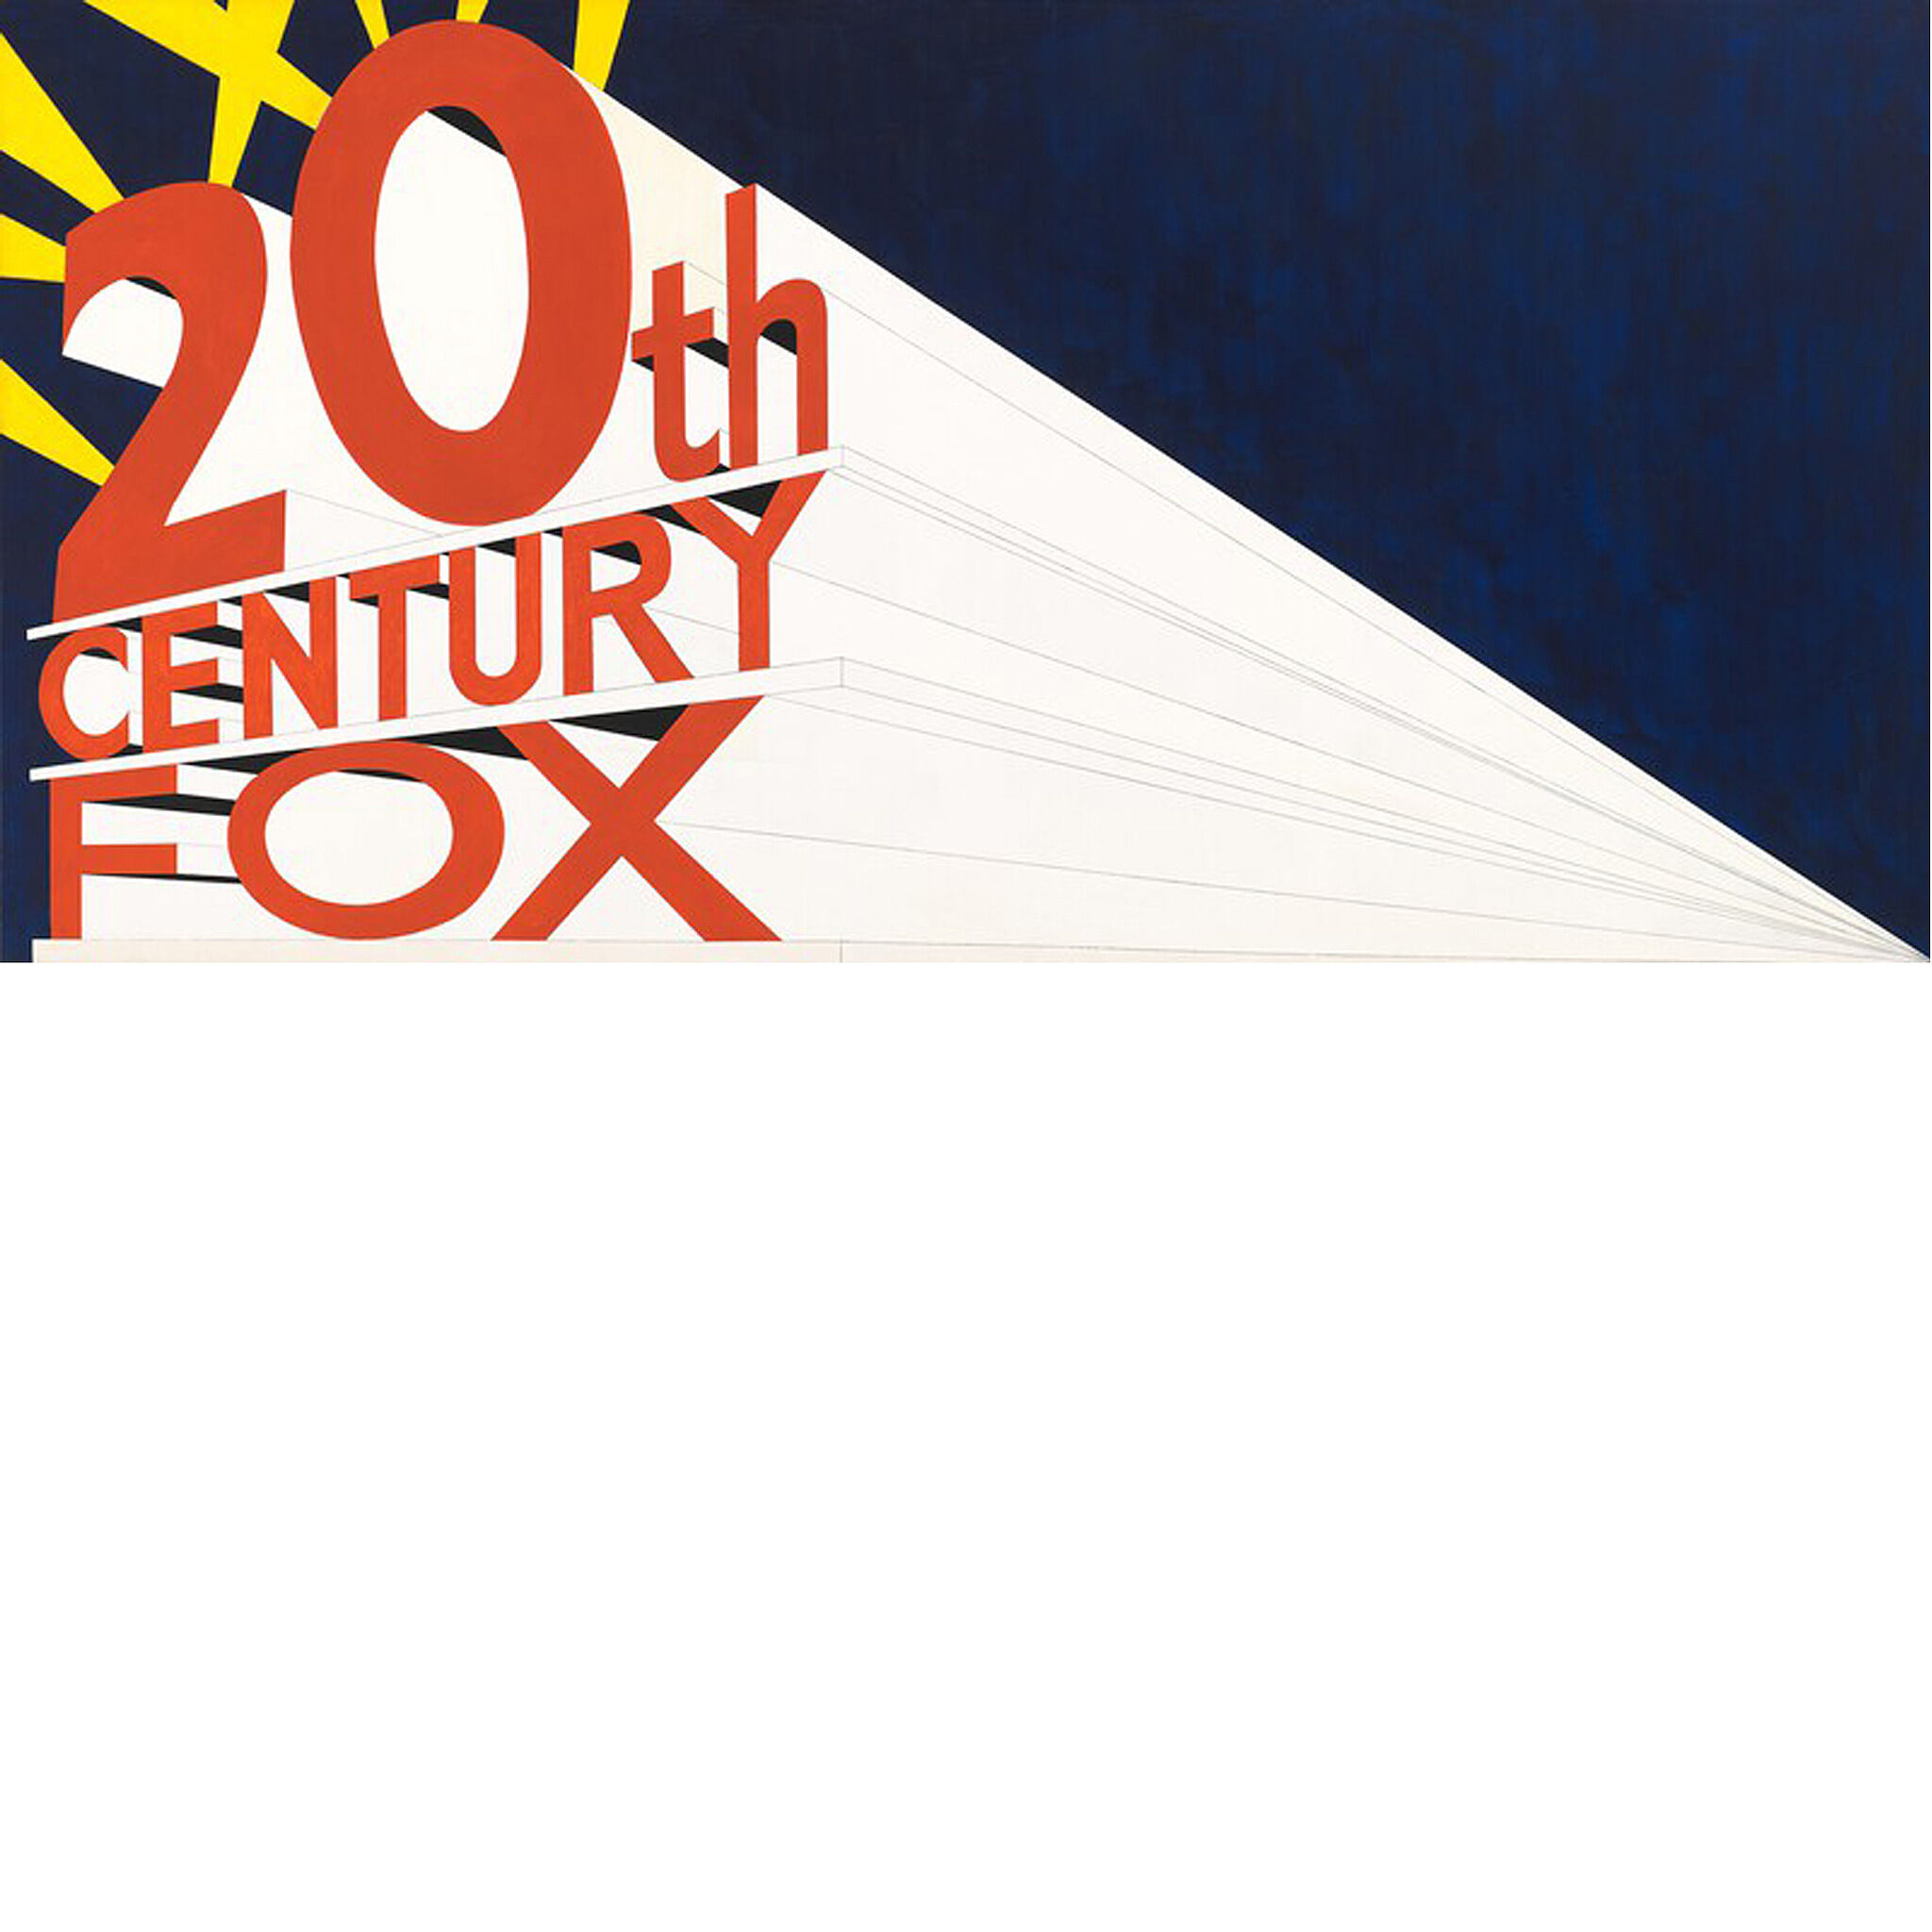 Twentieth Century Fox logo emanating from corner.